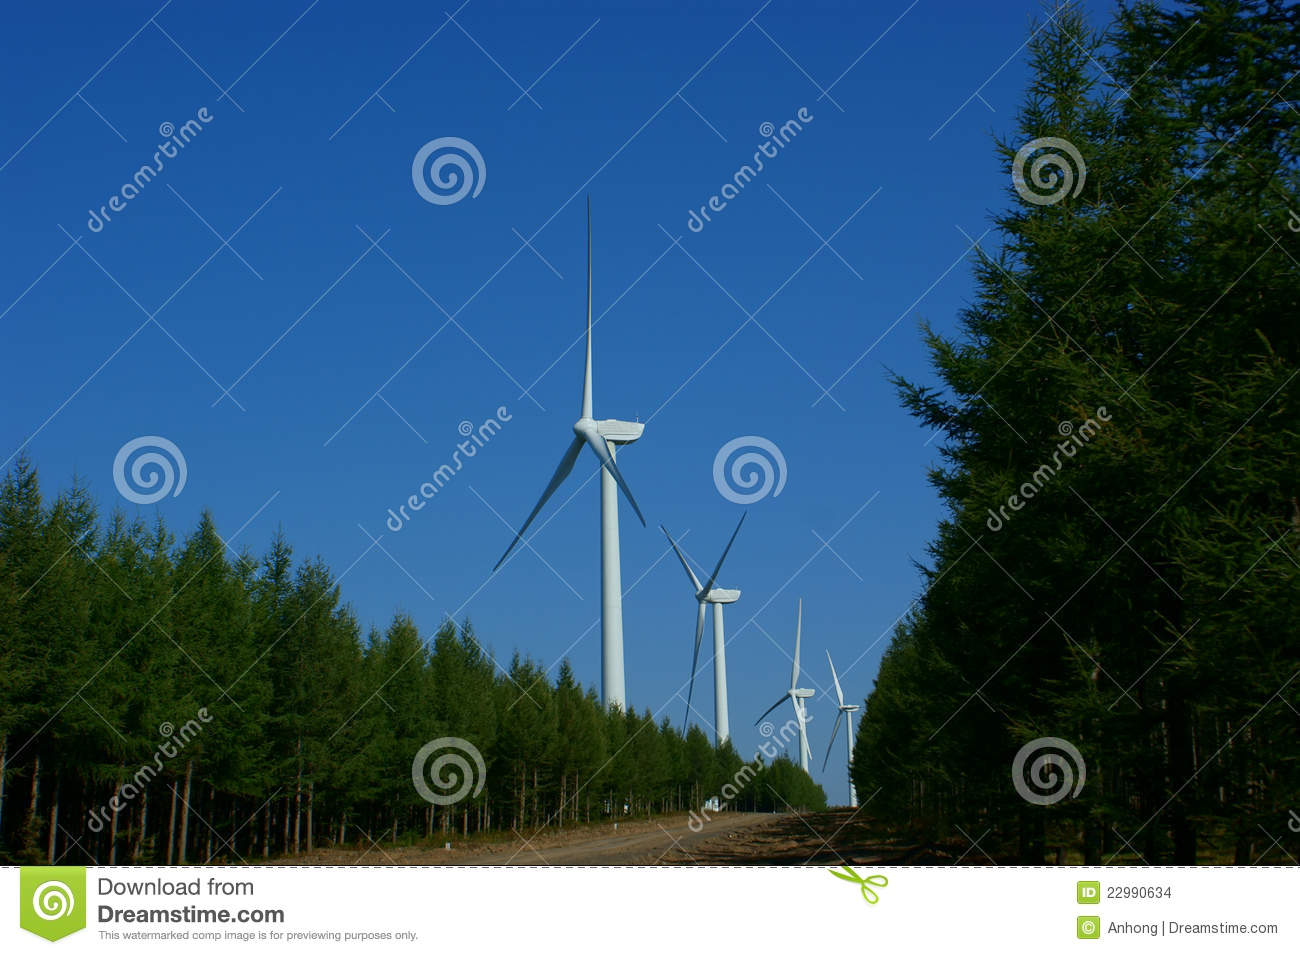 Wind Power Plant Stock Images - Image: 22990634